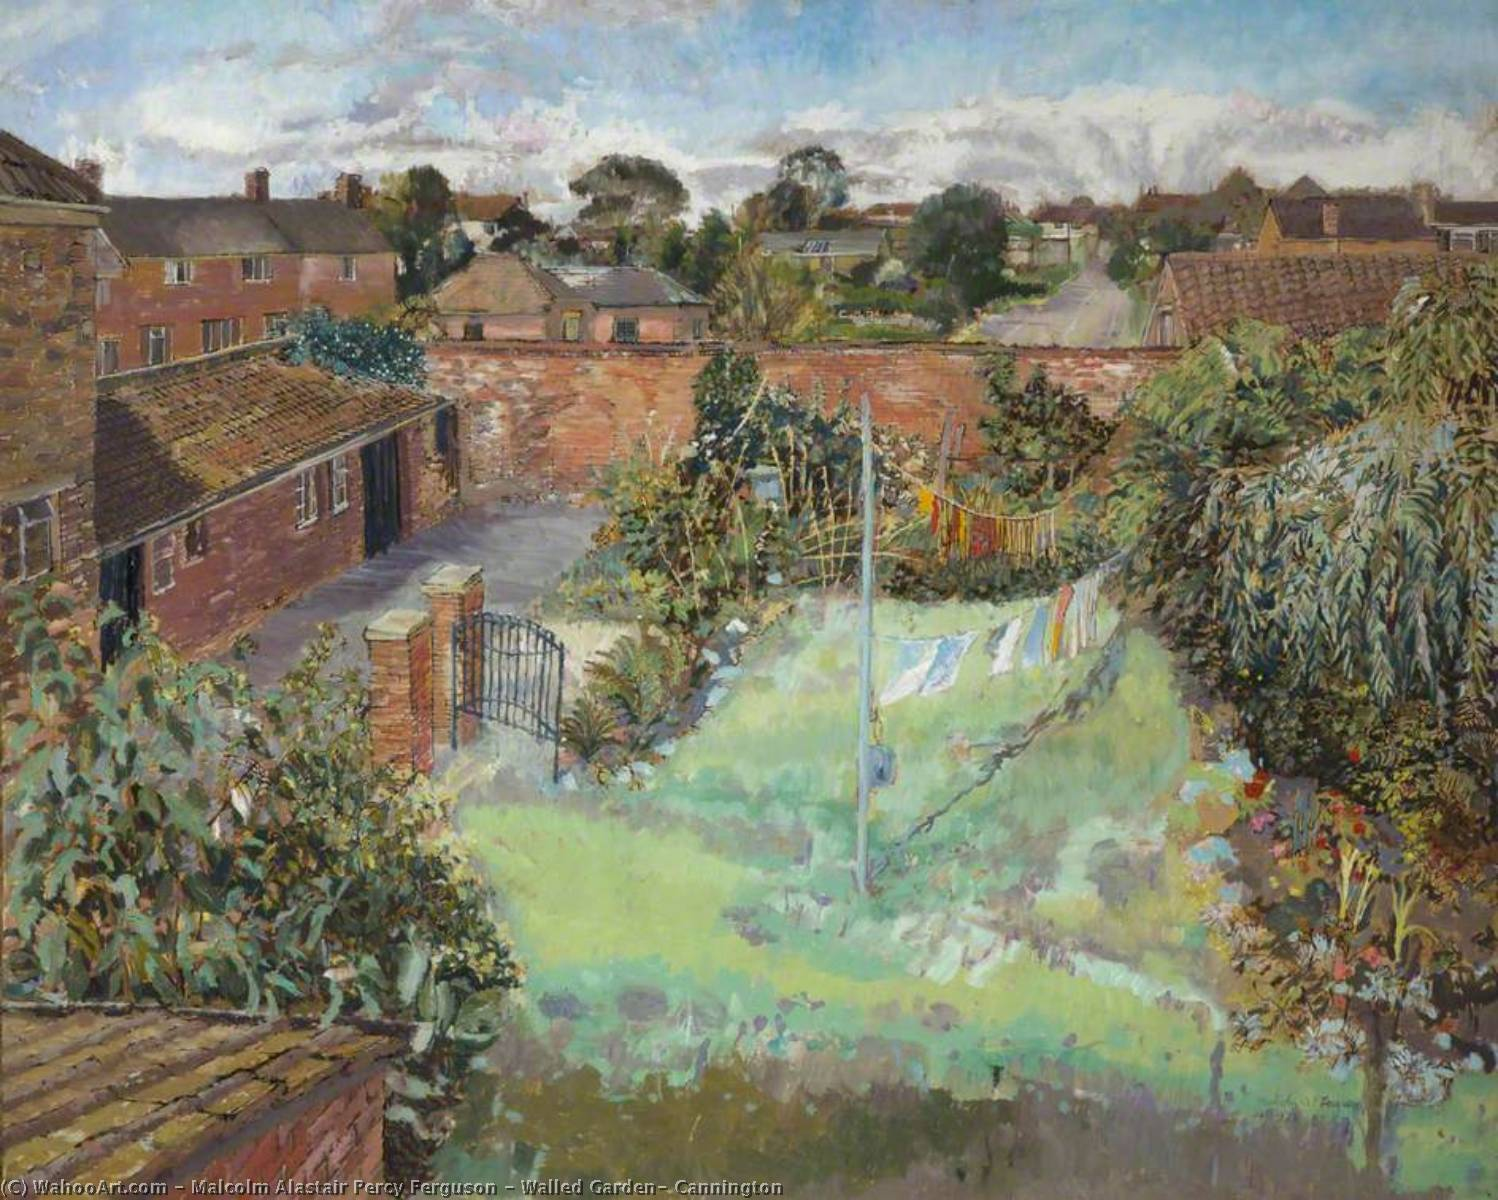 Wikioo.org - The Encyclopedia of Fine Arts - Painting, Artwork by Malcolm Alastair Percy Ferguson - Walled Garden, Cannington